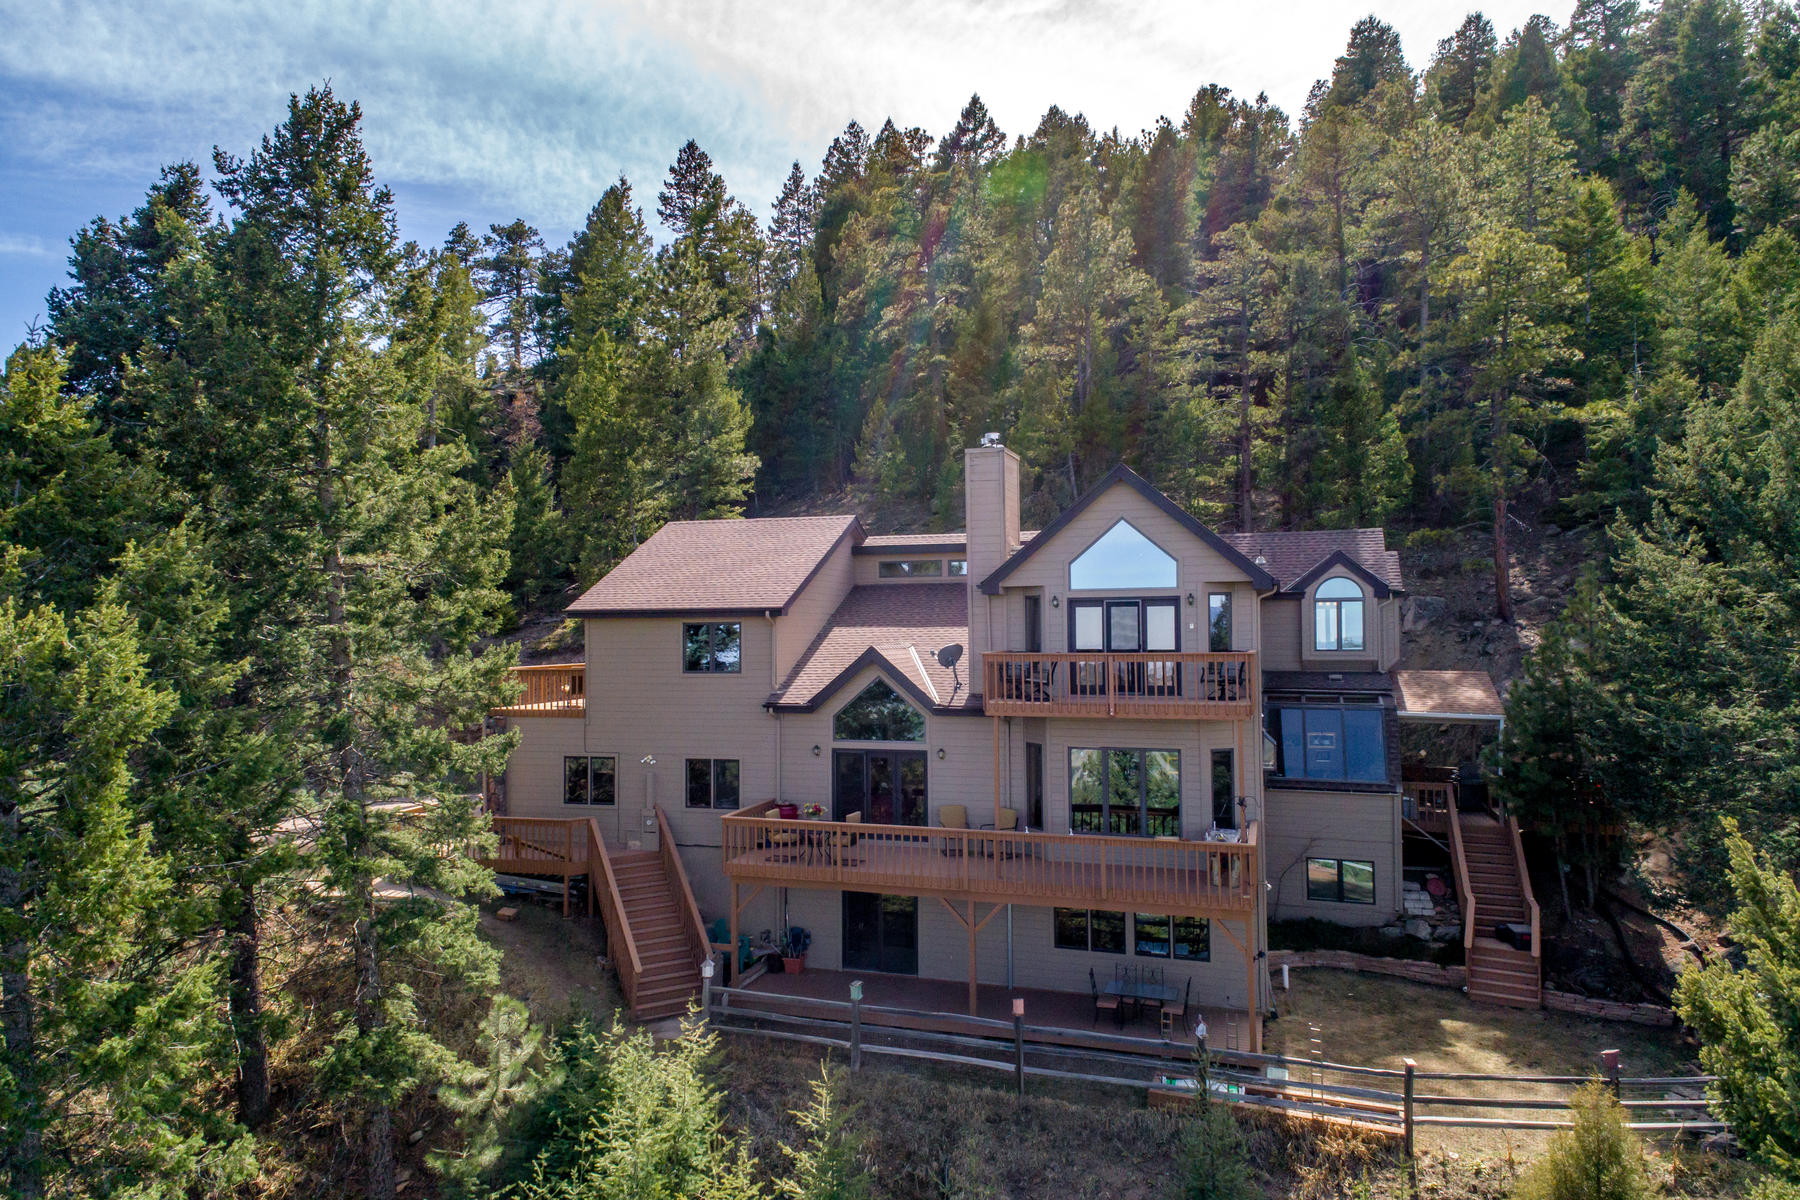 Single Family Home for Active at Epitome of the Colorado Lifestyle 4600 Olympic Way Evergreen, Colorado 80439 United States